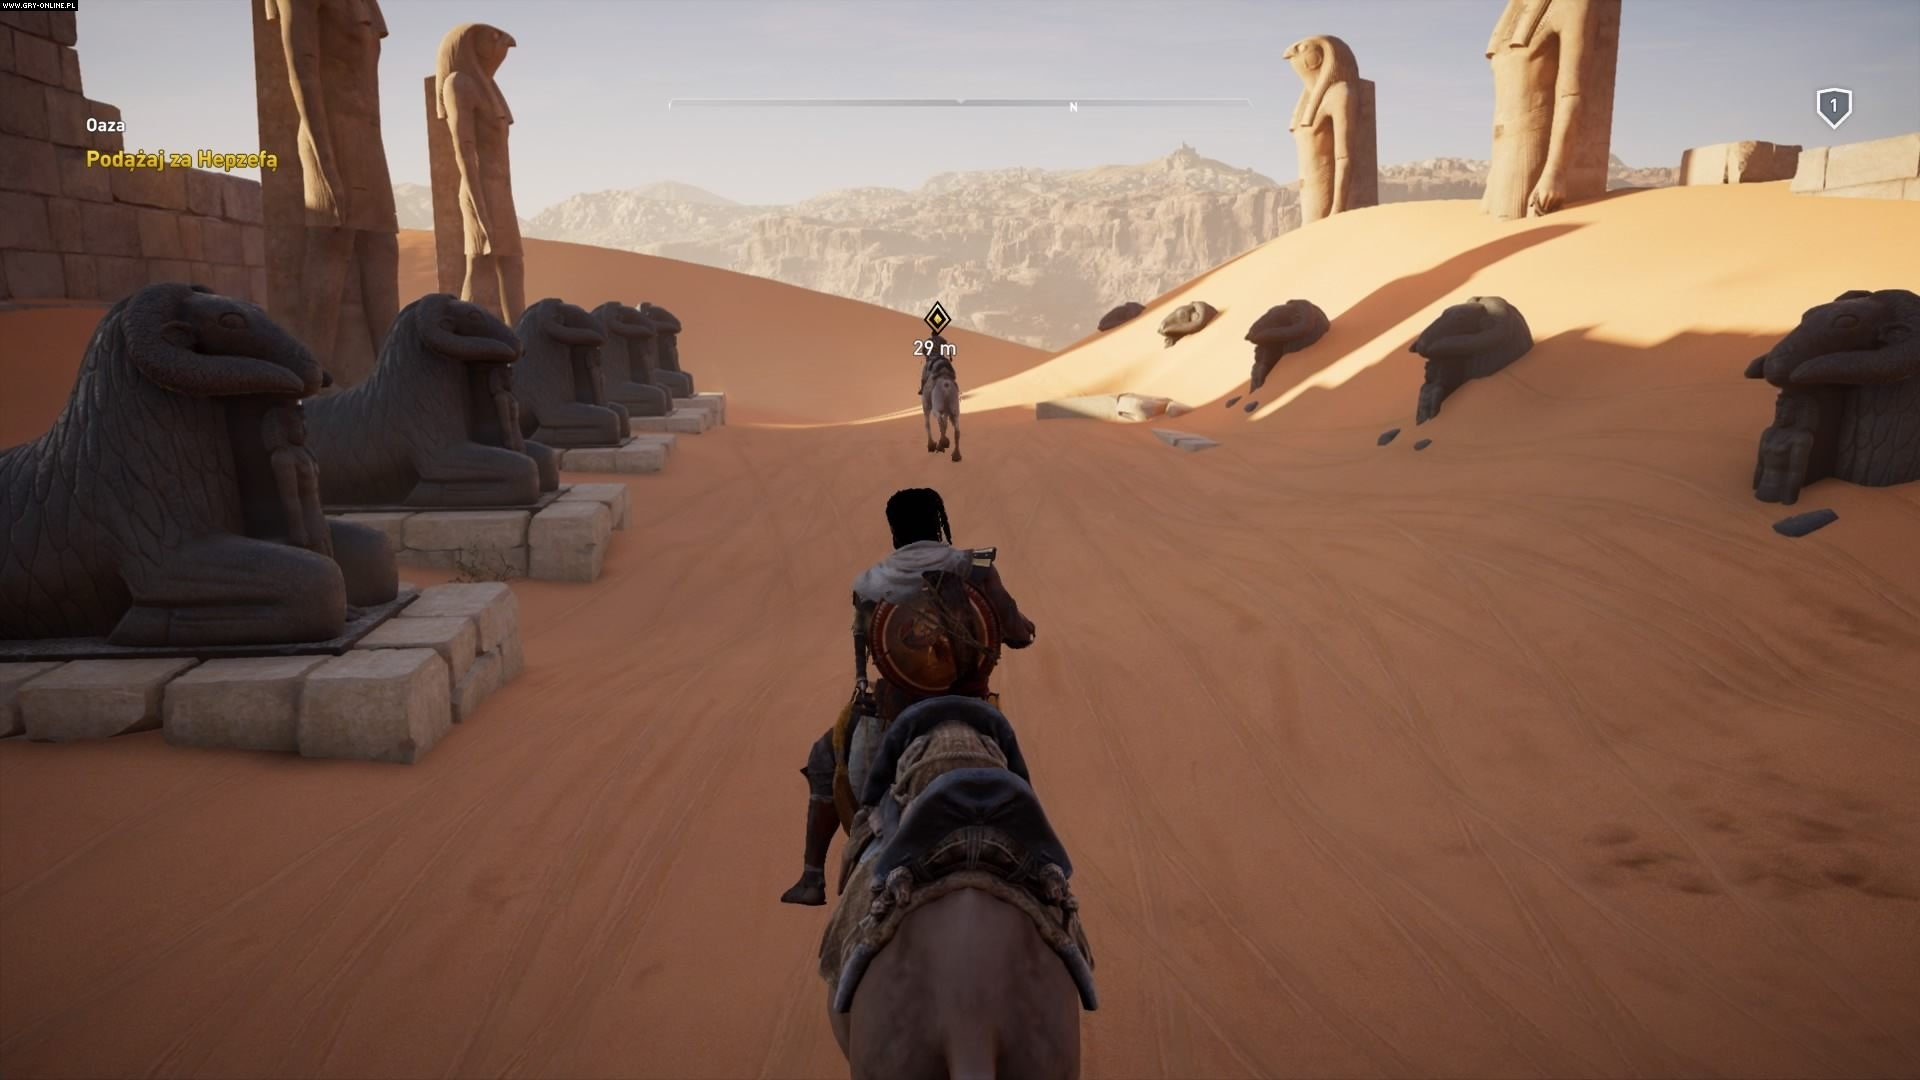 Assassin's Creed Origins PC, PS4, XONE Games Image 51/96, Ubisoft